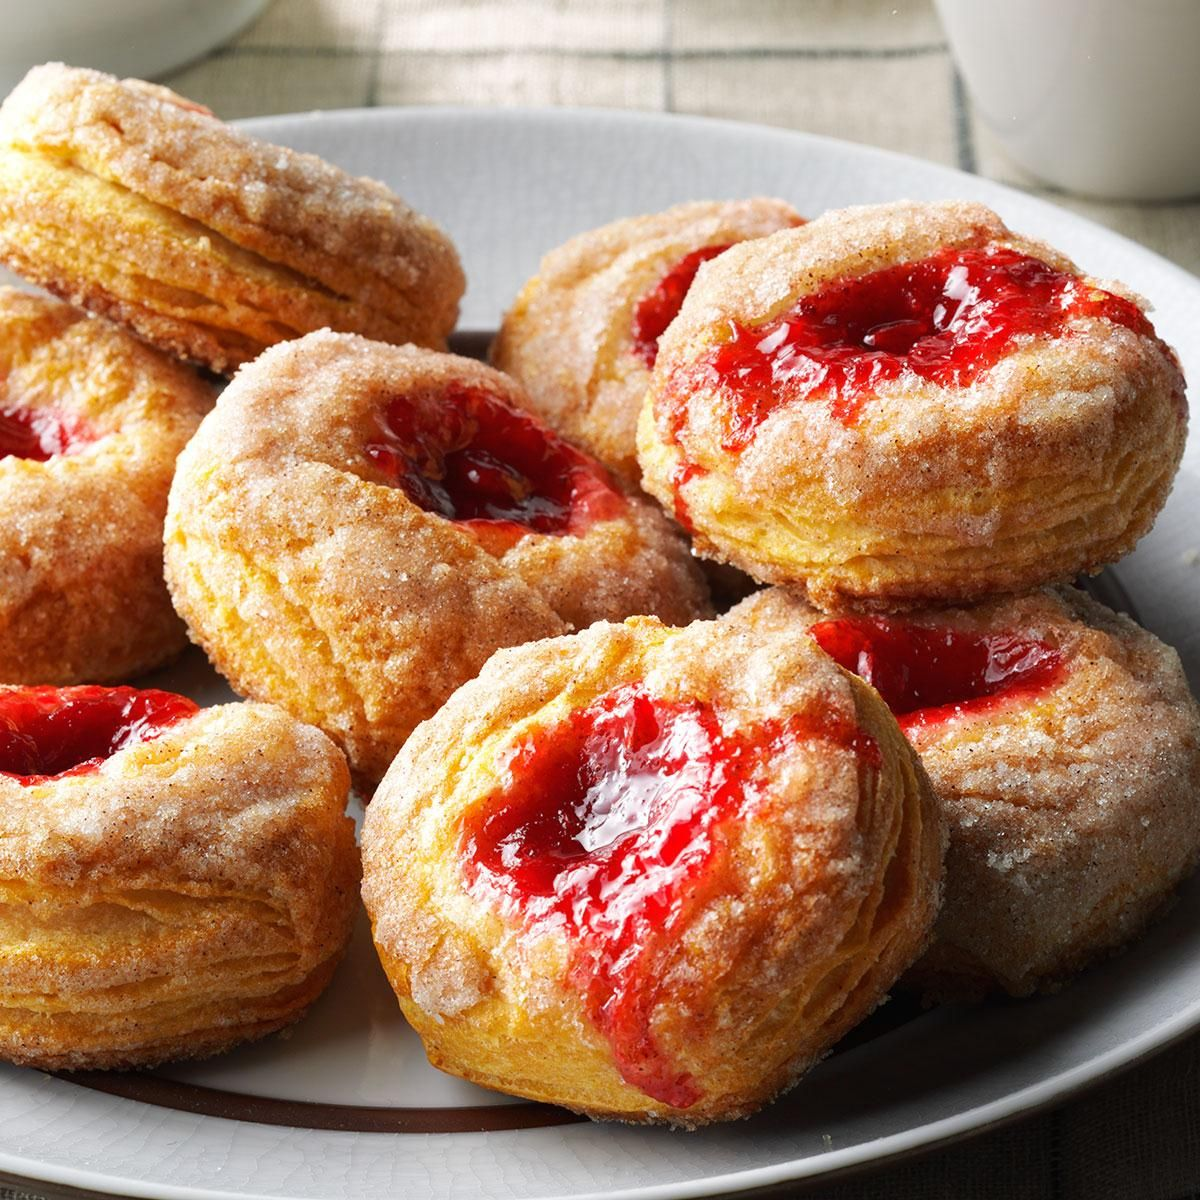 Cinnamon Fruit Biscuits Recipe Easy Pastry Recipes Homemade Biscuits Pastry Recipes